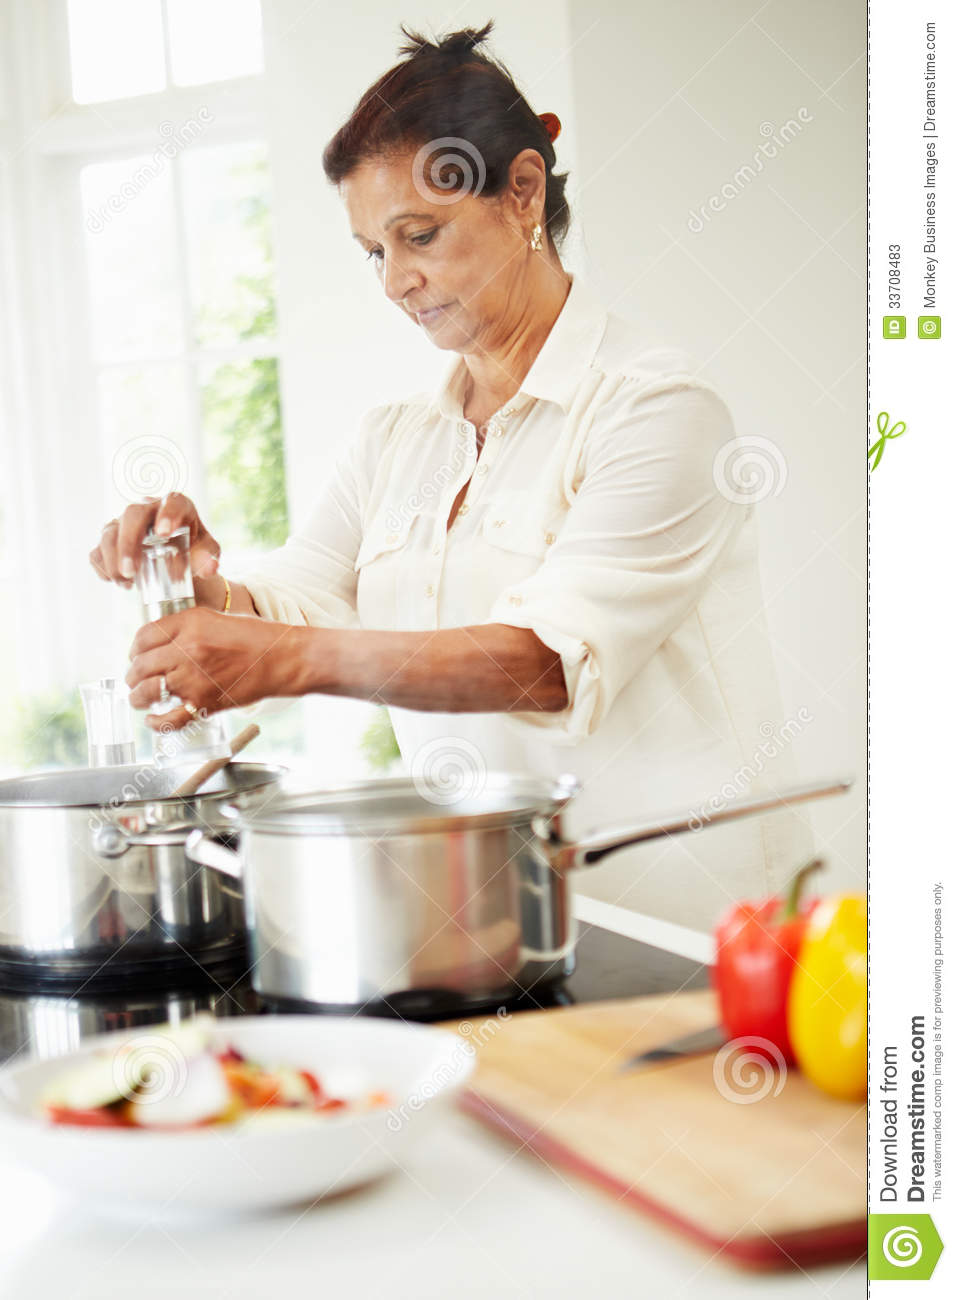 http://thumbs.dreamstime.com/z/senior-indian-woman-cooking-meal-home-kitchen-concentrating-33708483.jpg Indian Woman Cooking